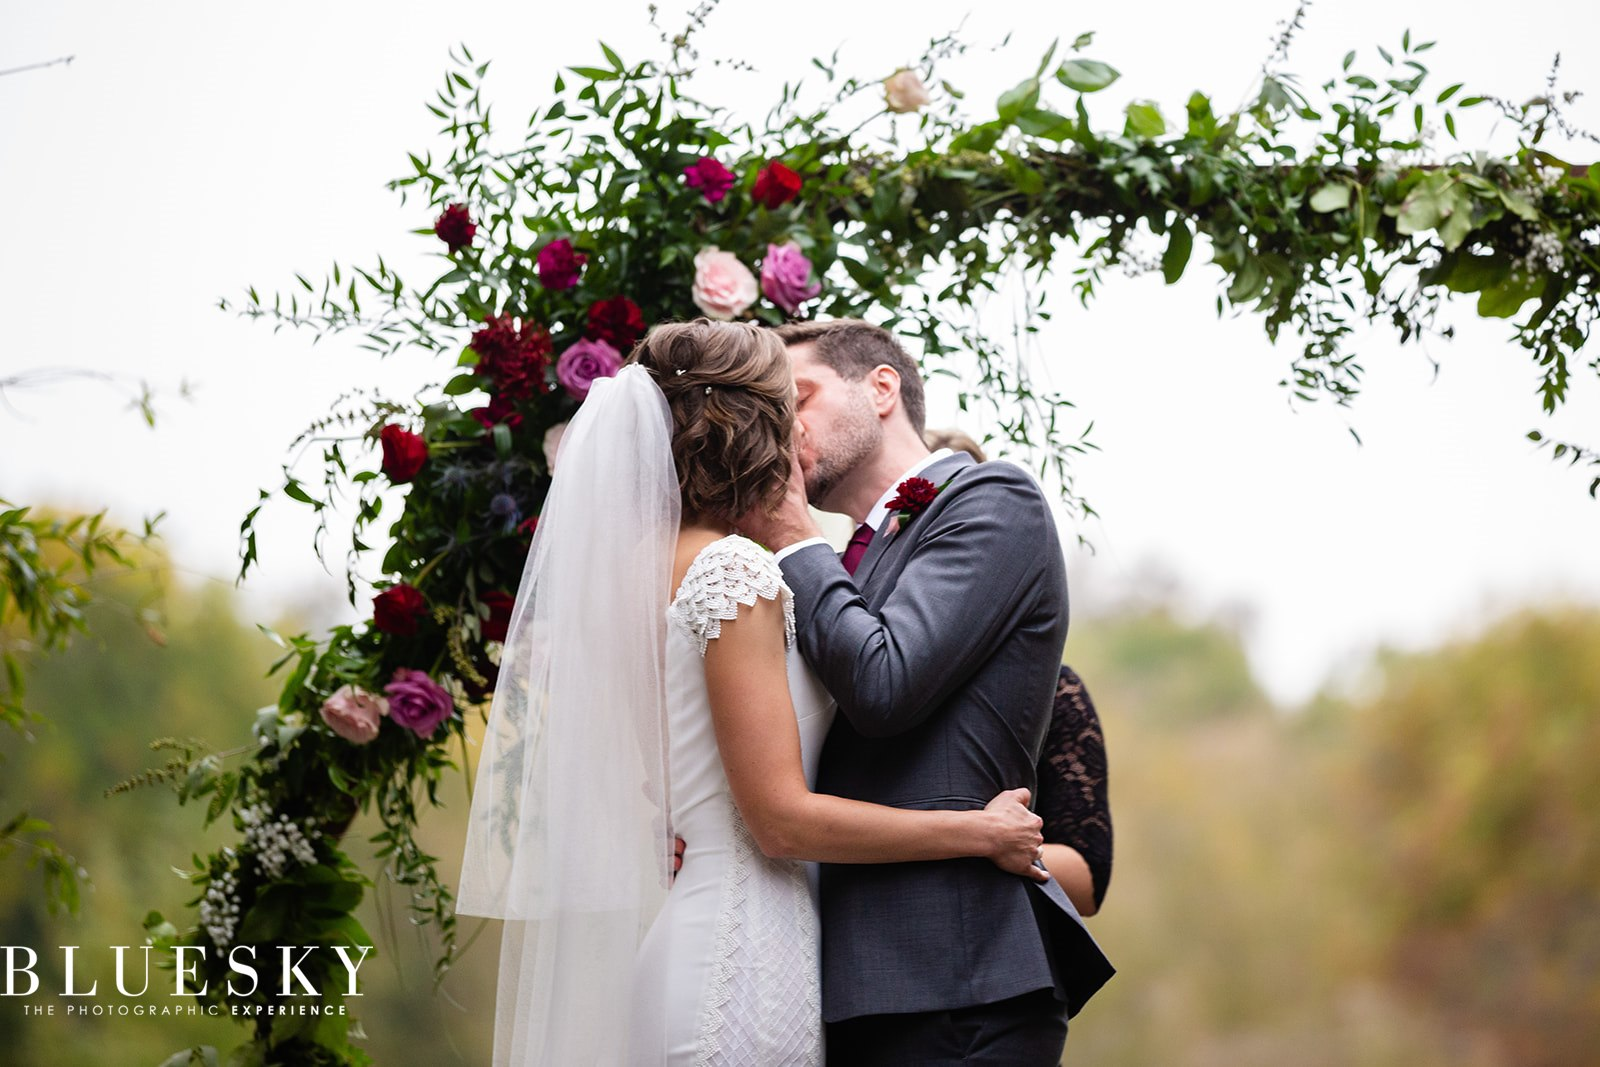 SociablyYours - Bride and Groom First Kiss